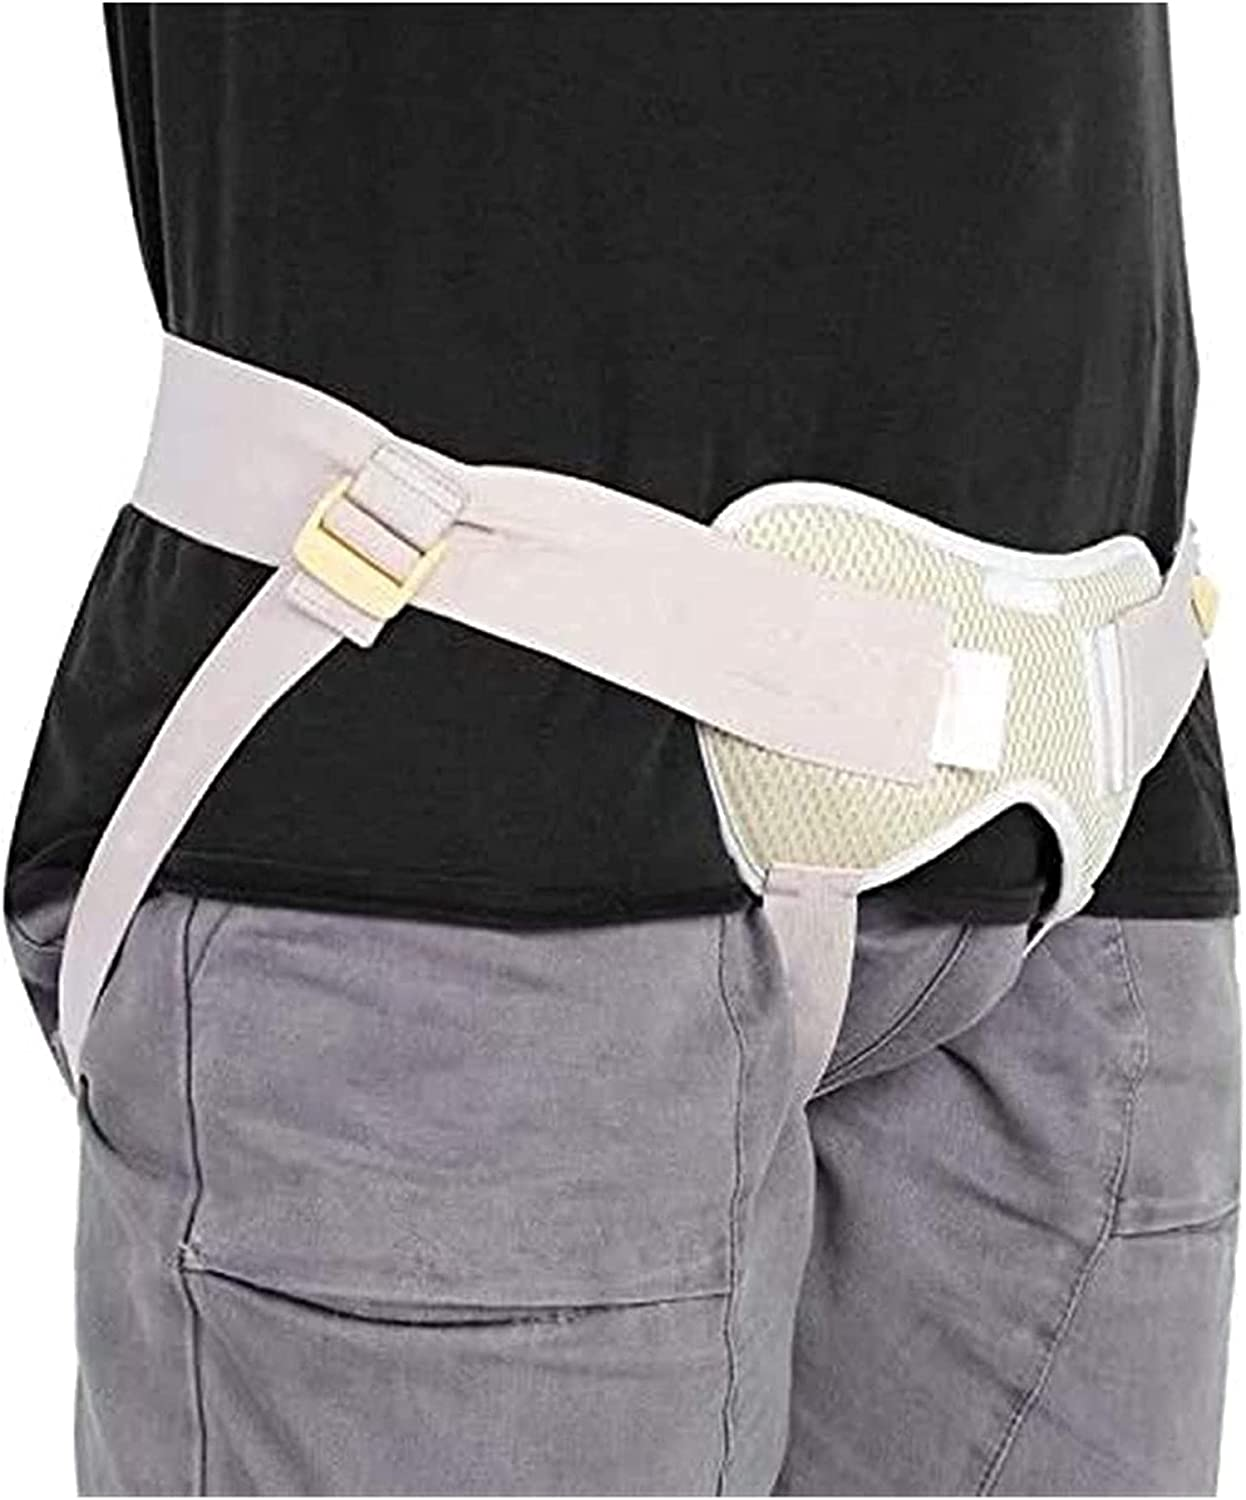 lovediyxihe Fort Worth Mall Adjustable Inguinal Hernia Support Inflat Groin Belt shop